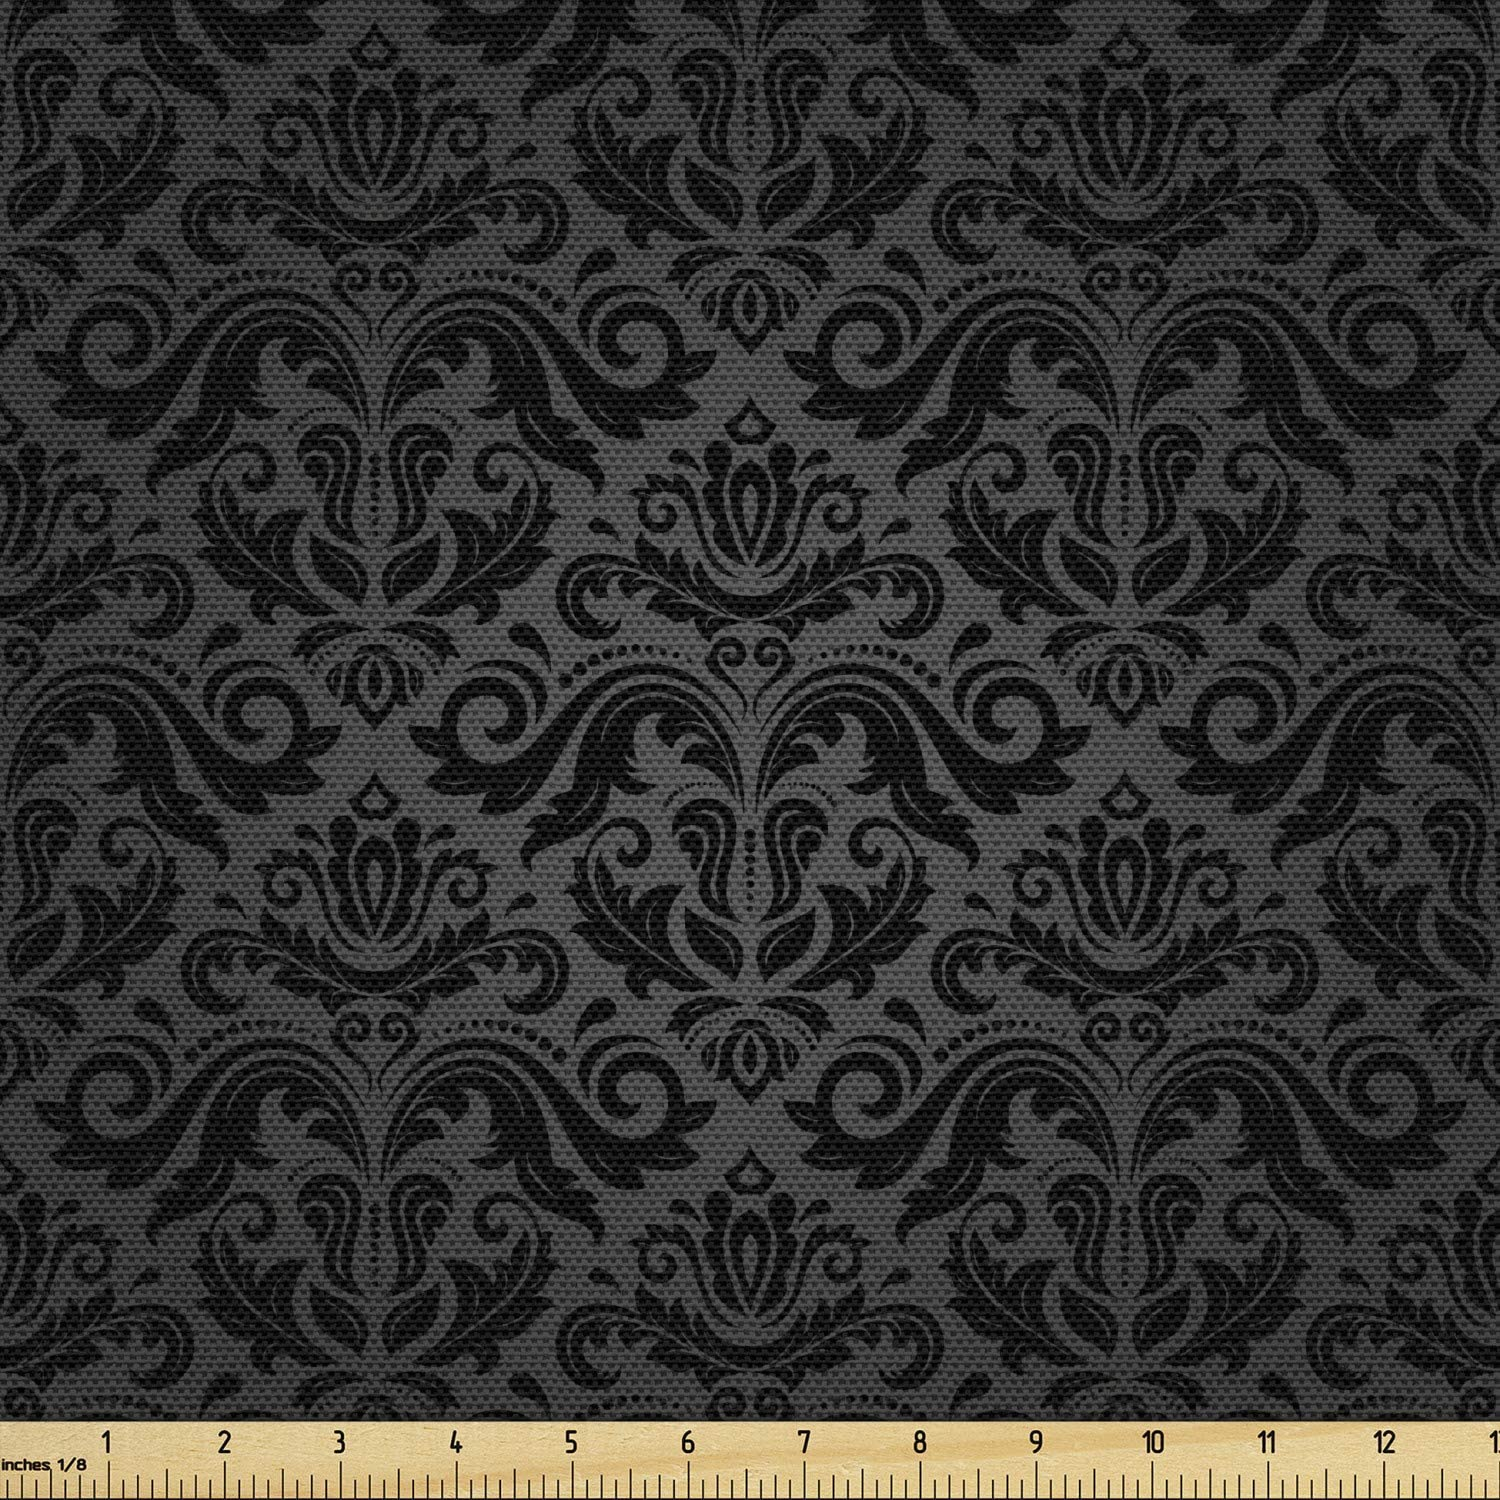 Ambesonne Dark Grey Fabric by The Yard, Black Damask and Floral Elements Oriental Antique Ornament Vintage, Decorative Fabric for Upholstery and Home Accents, 3 Yards, Black Grey